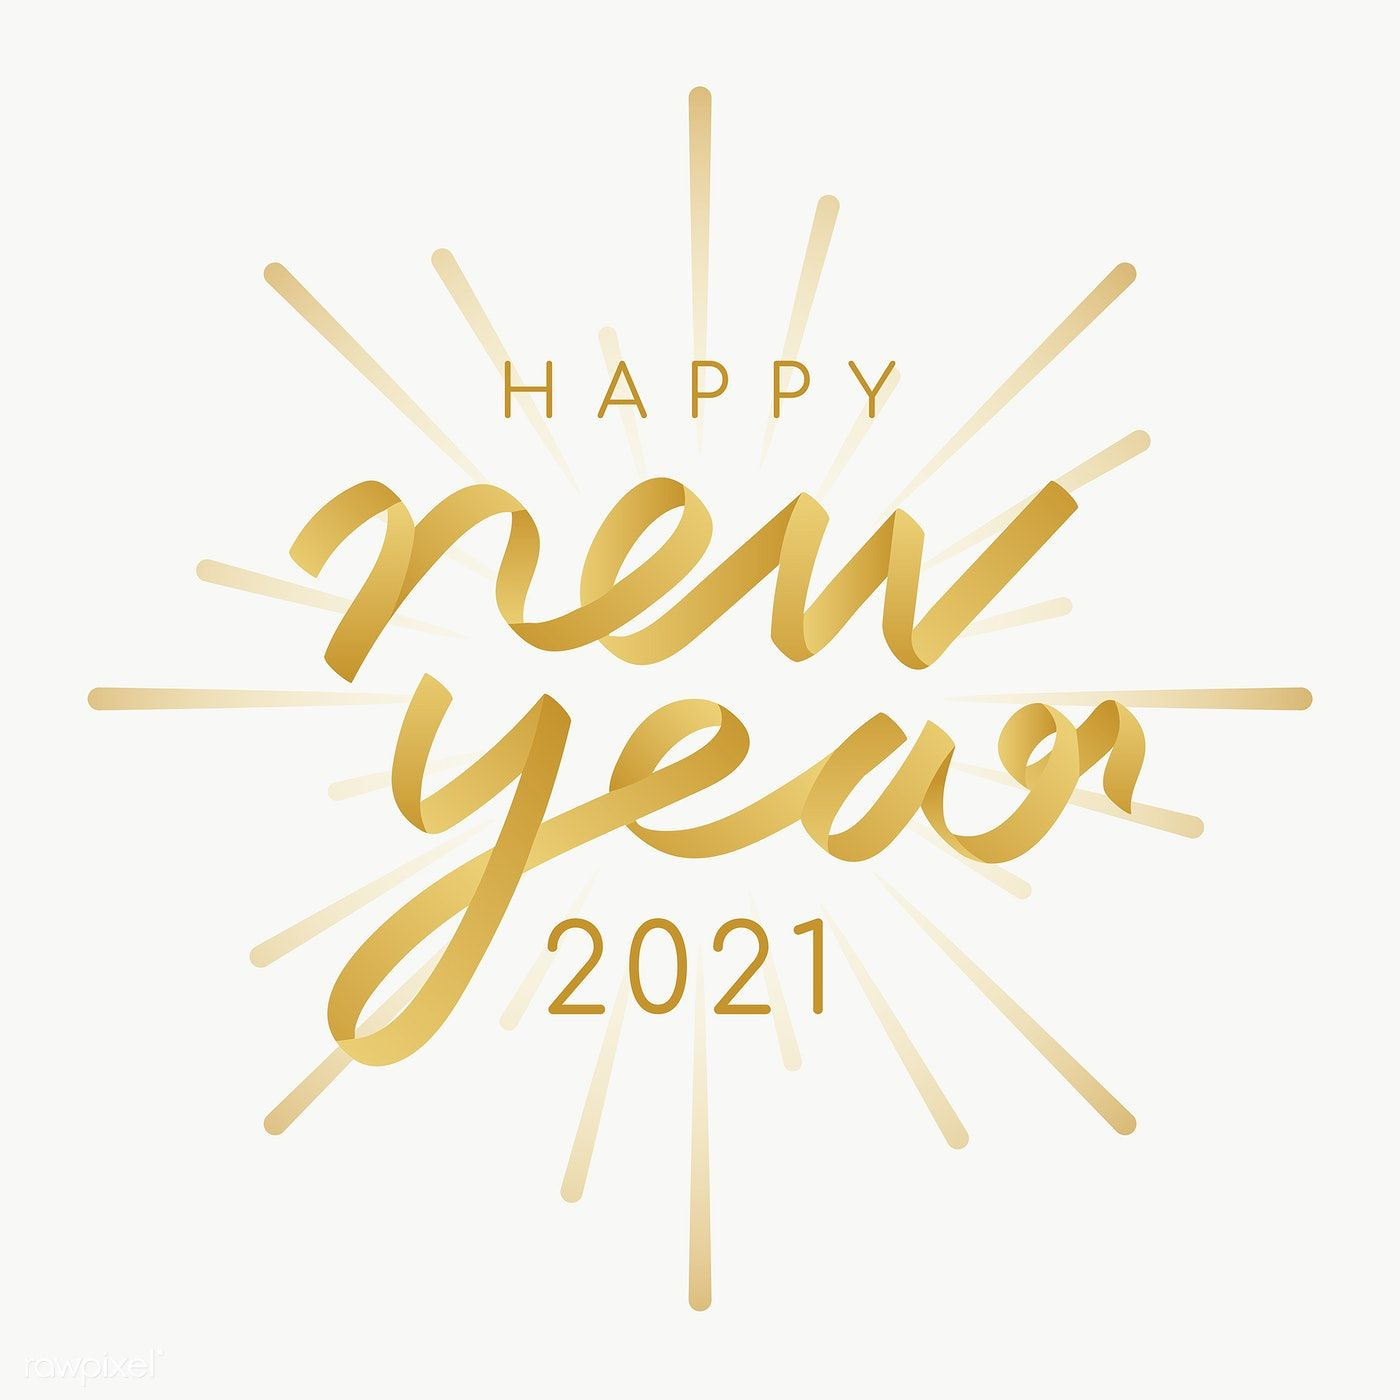 Happy New Year 2021 Transparent Png Free Image By Rawpixel Com Ningzk V Happy New Year Png Happy New Year Pictures Happy New Year Design